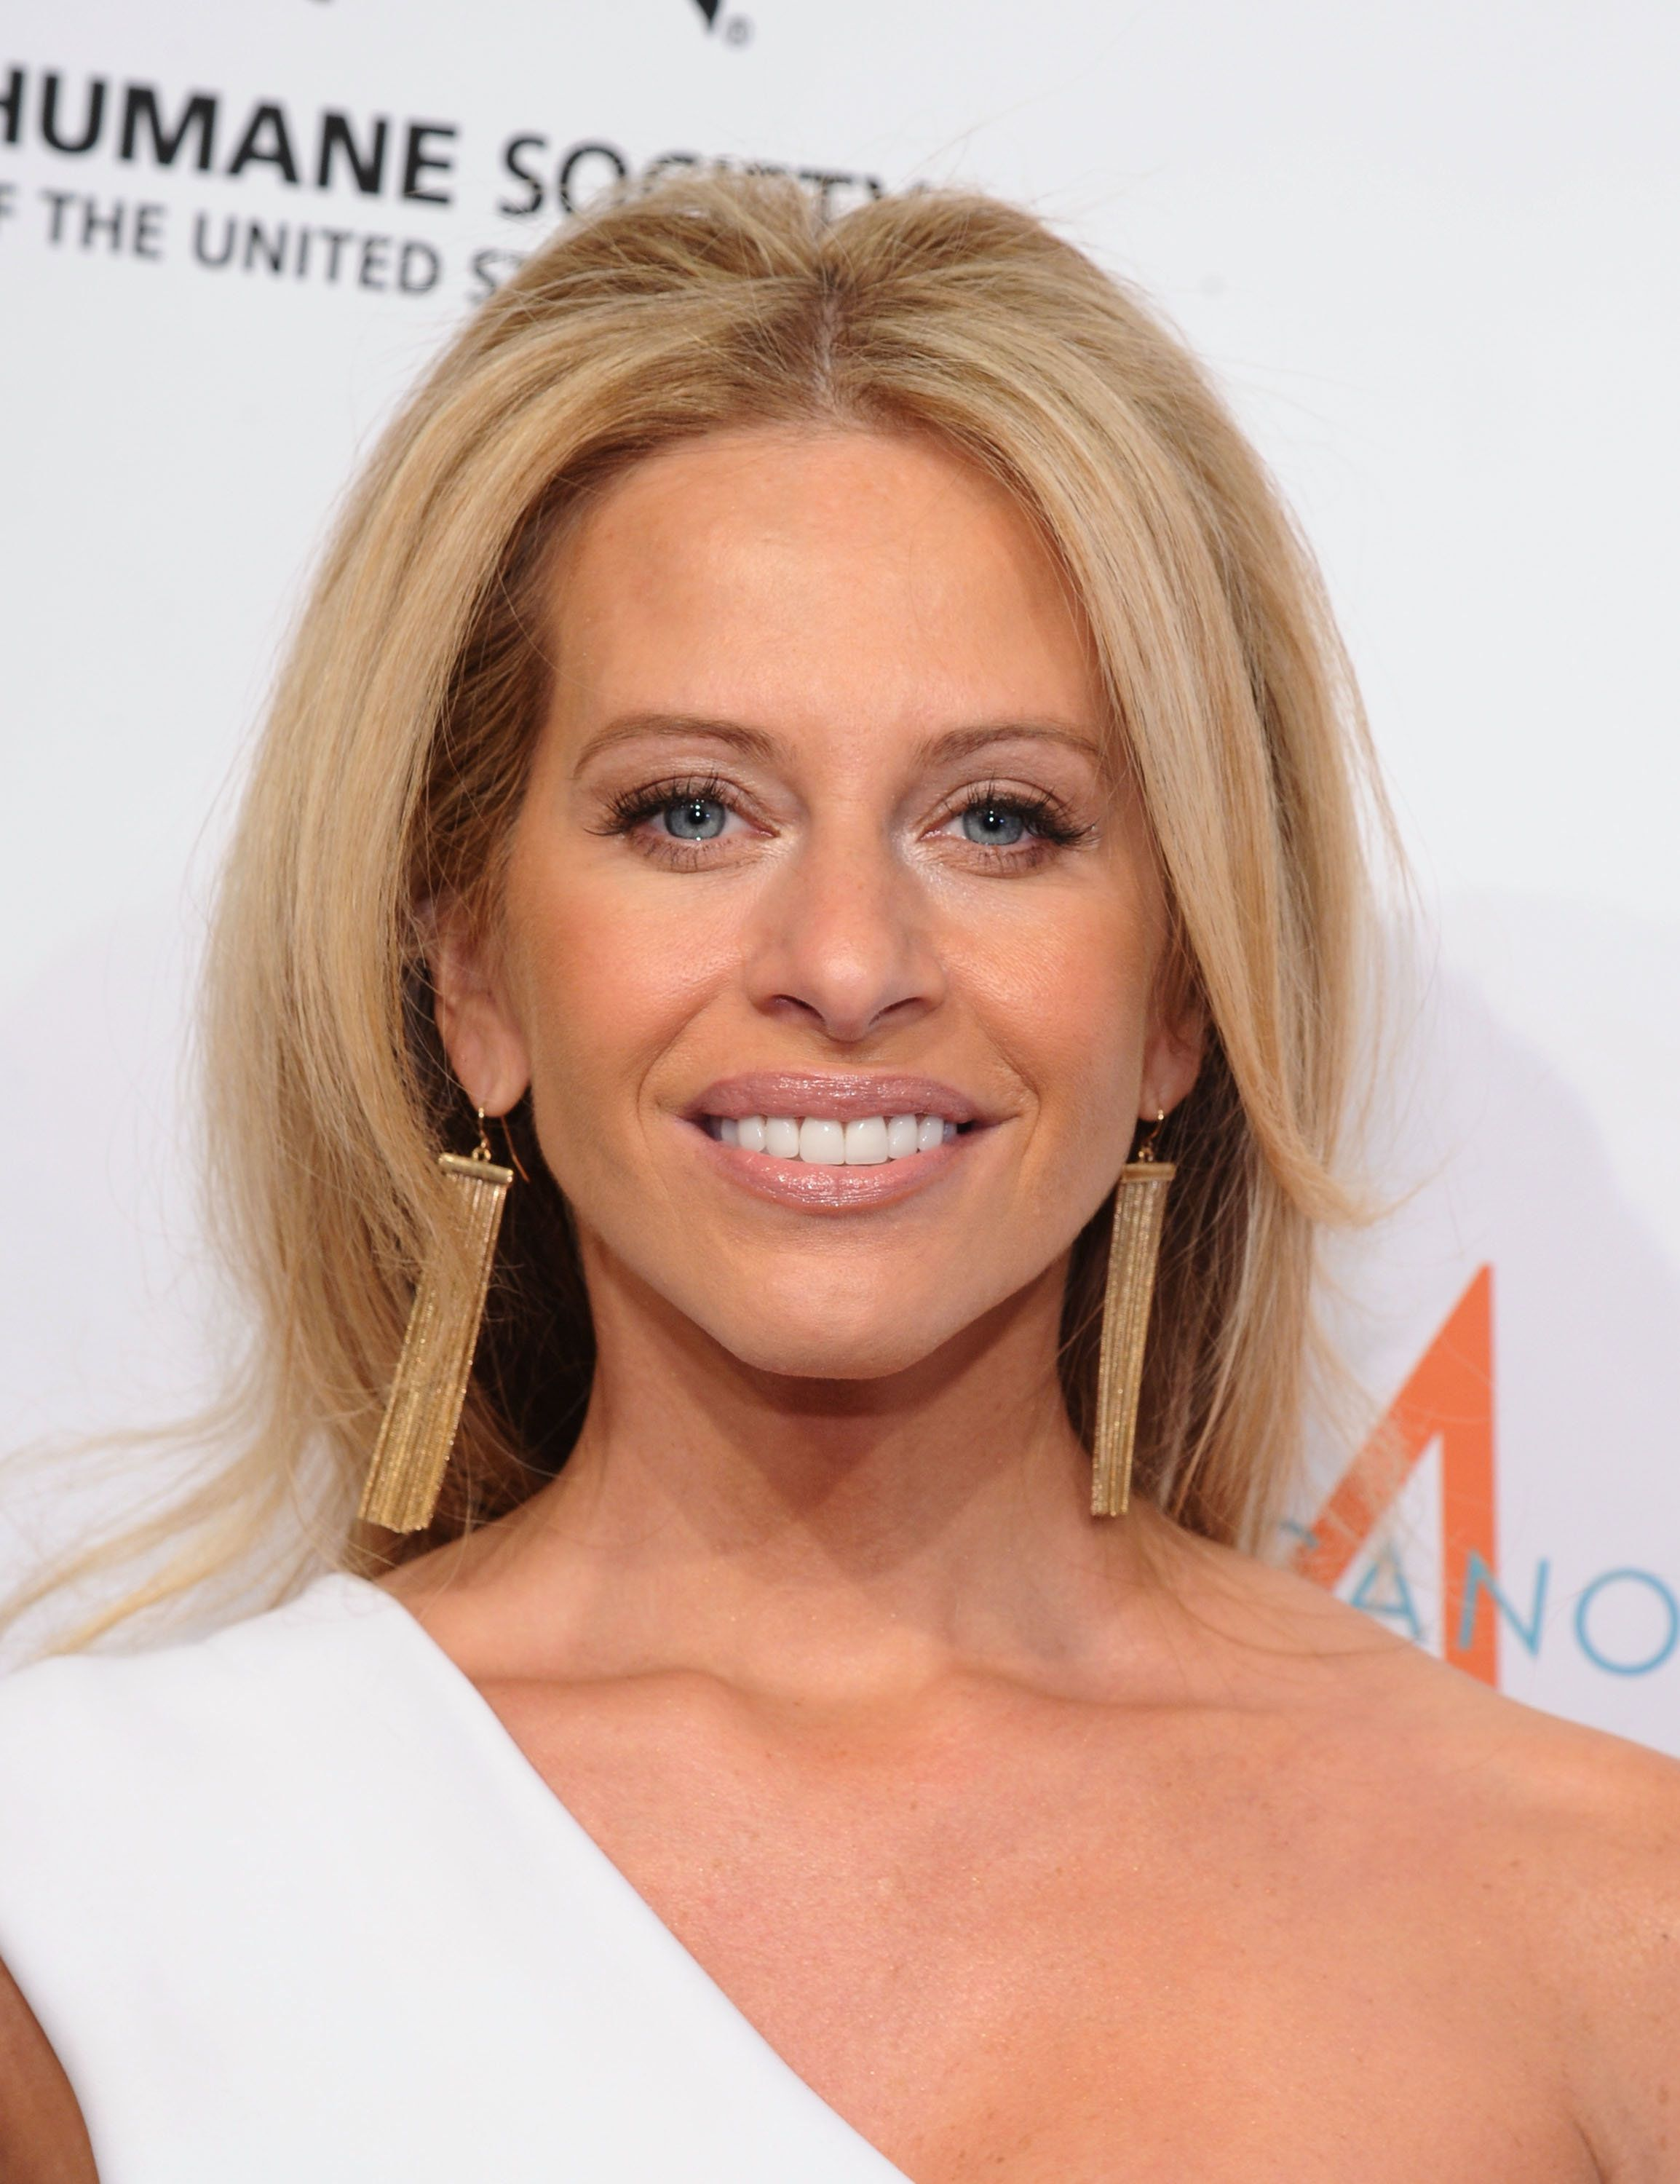 NEW YORK, NY - NOVEMBER 21:  TV personality Dina Manzo attends 'To the Rescue! New York' 60th Anniversary Gala at Cipriani 42nd Street on November 21, 2014 in New York City.  (Photo by Ilya S. Savenok/Getty Images)